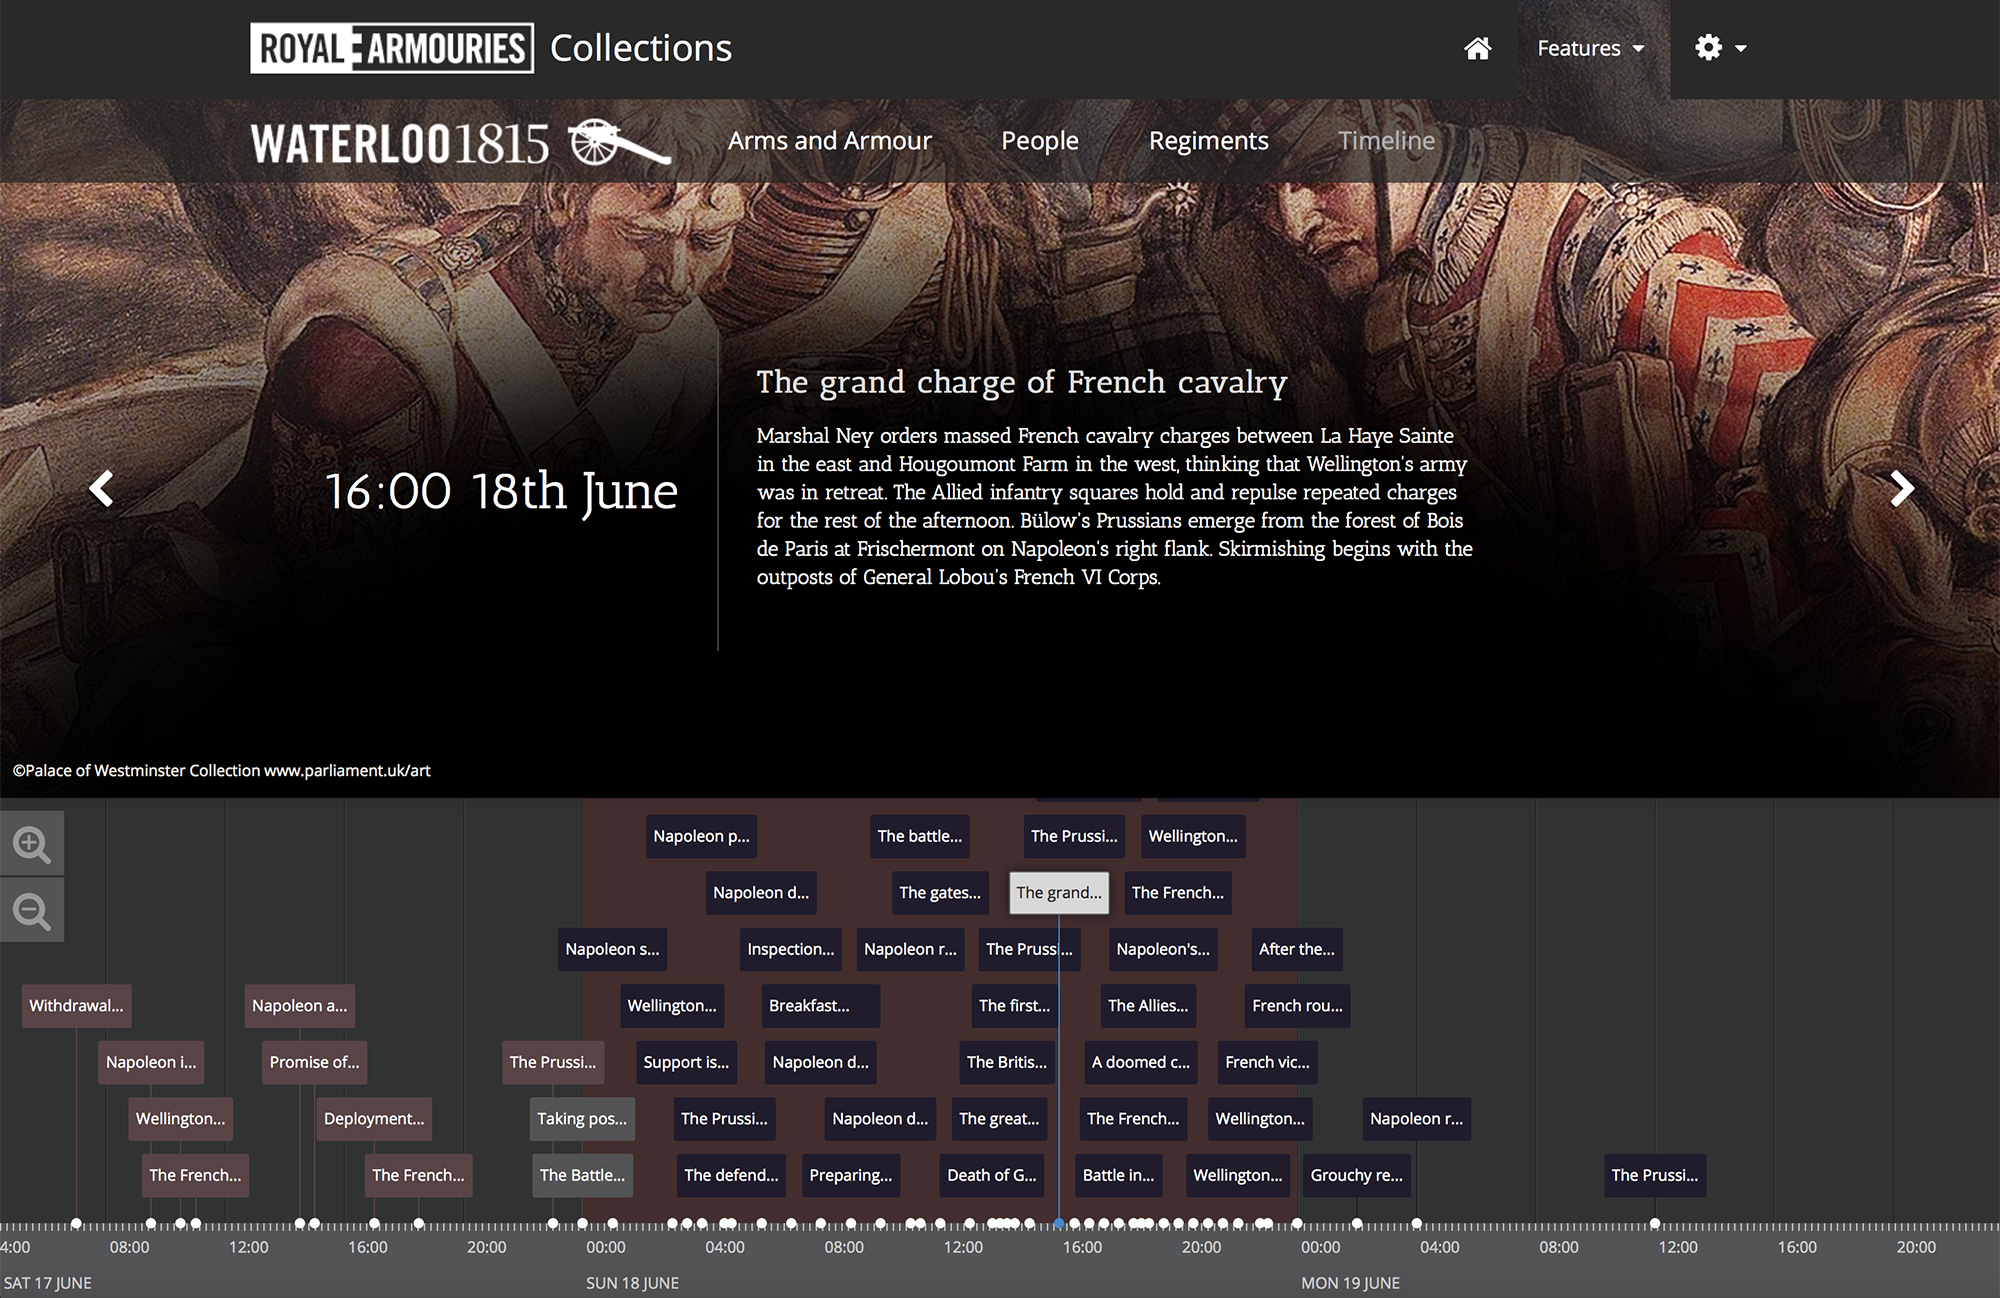 Royal Armouries Waterloo Timeline image